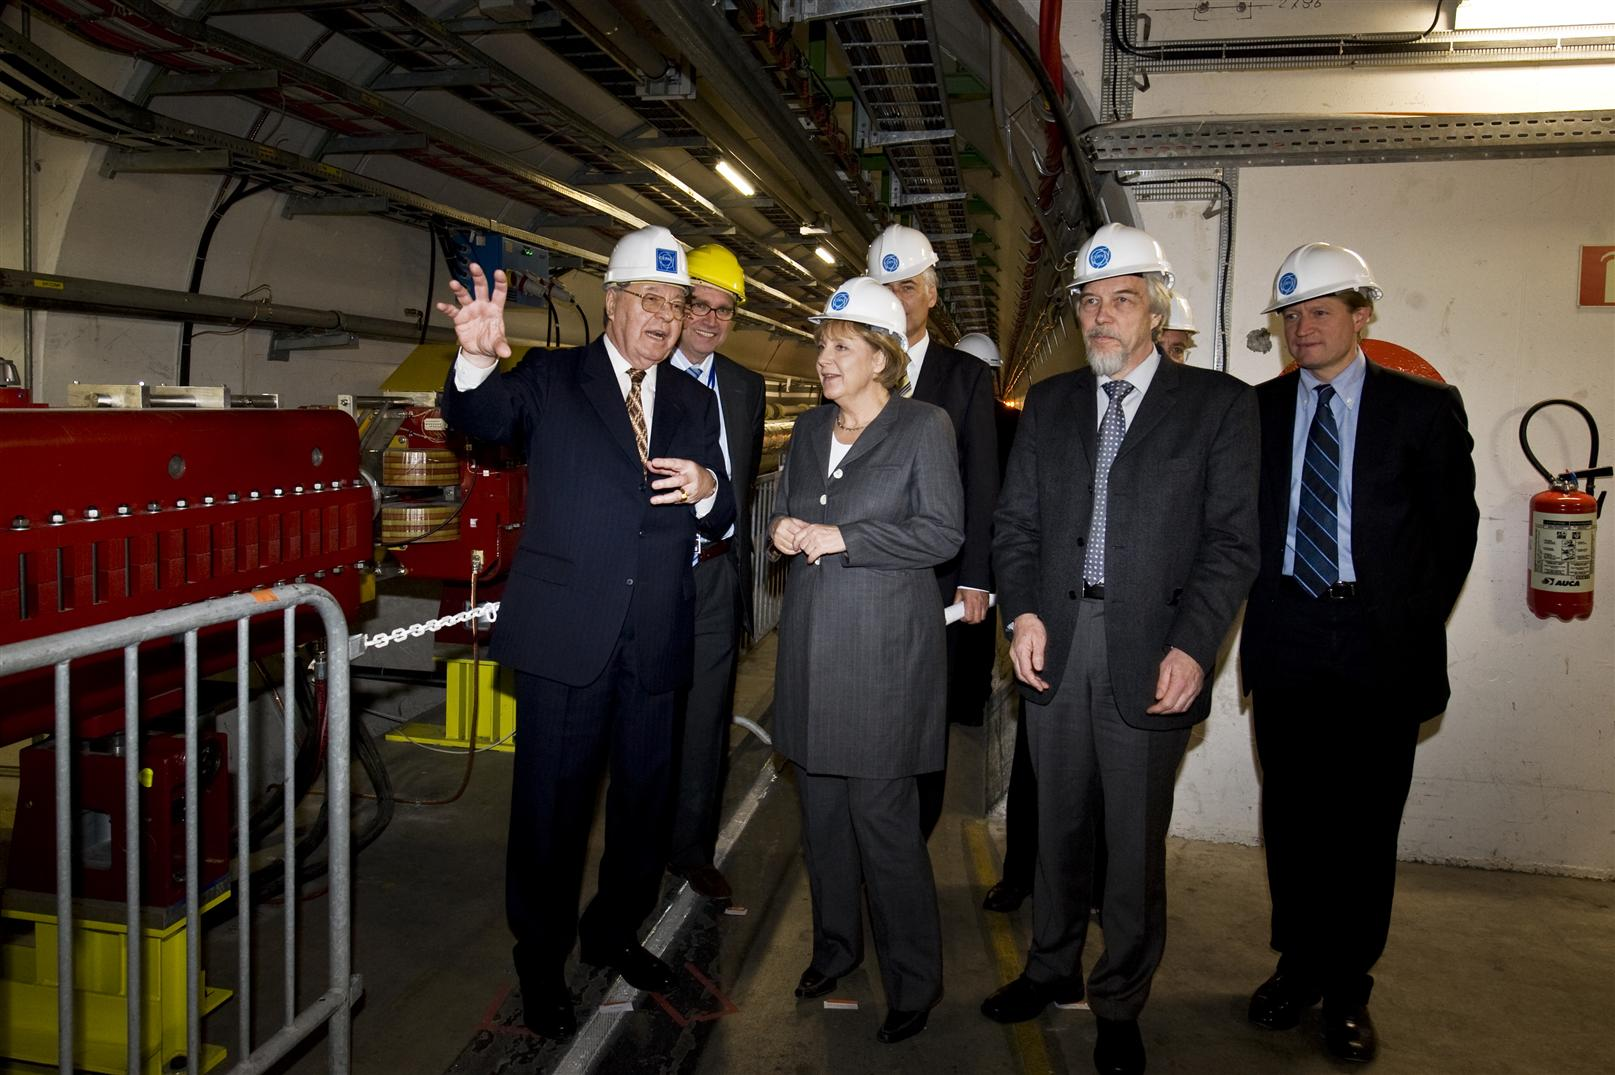 German Chancellor, Angela Merkel, visits CERN in April 2008